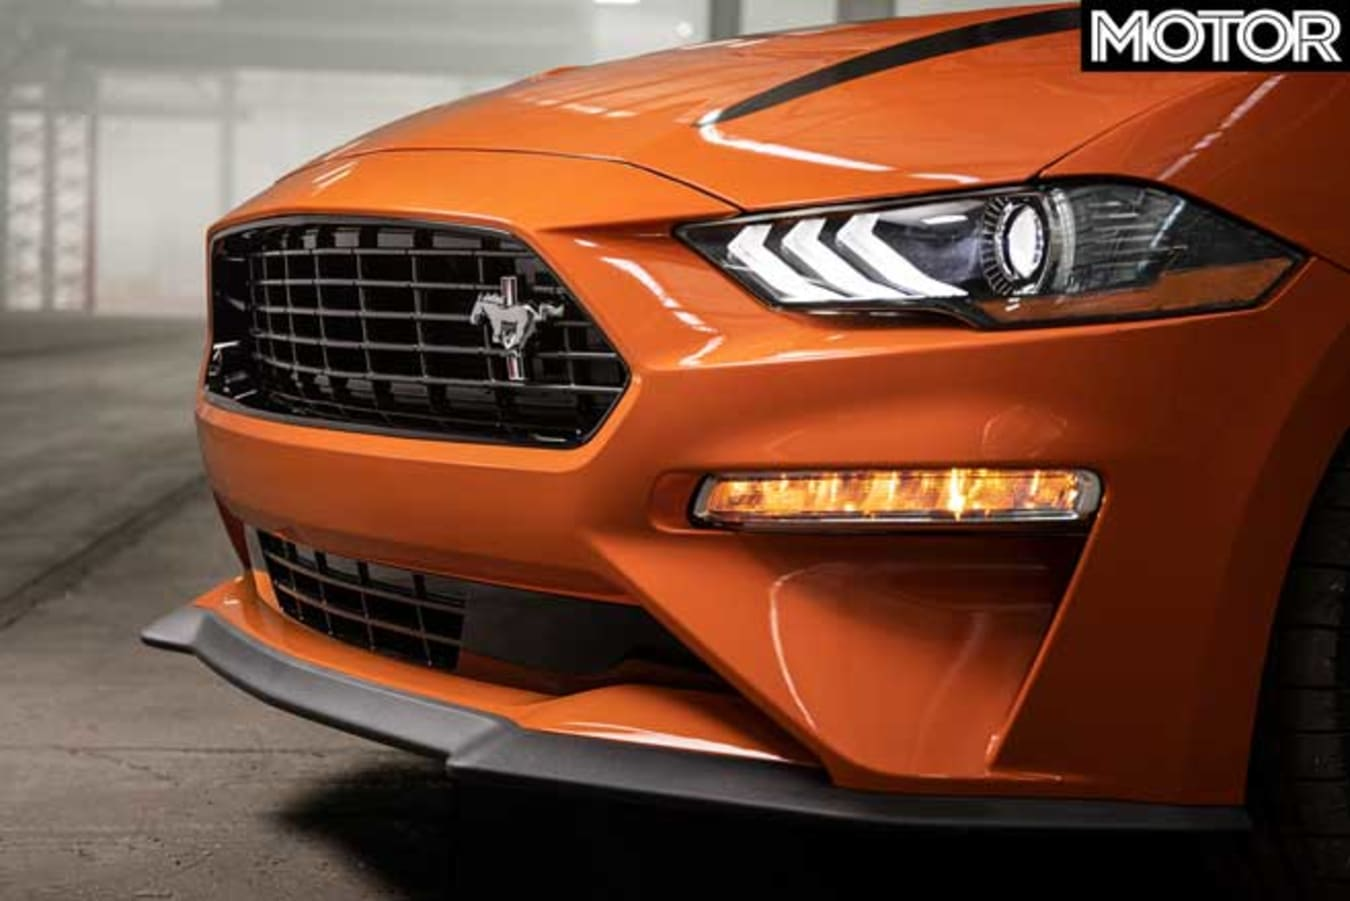 2020 Ford Mustang 2.3L High Performance front grille